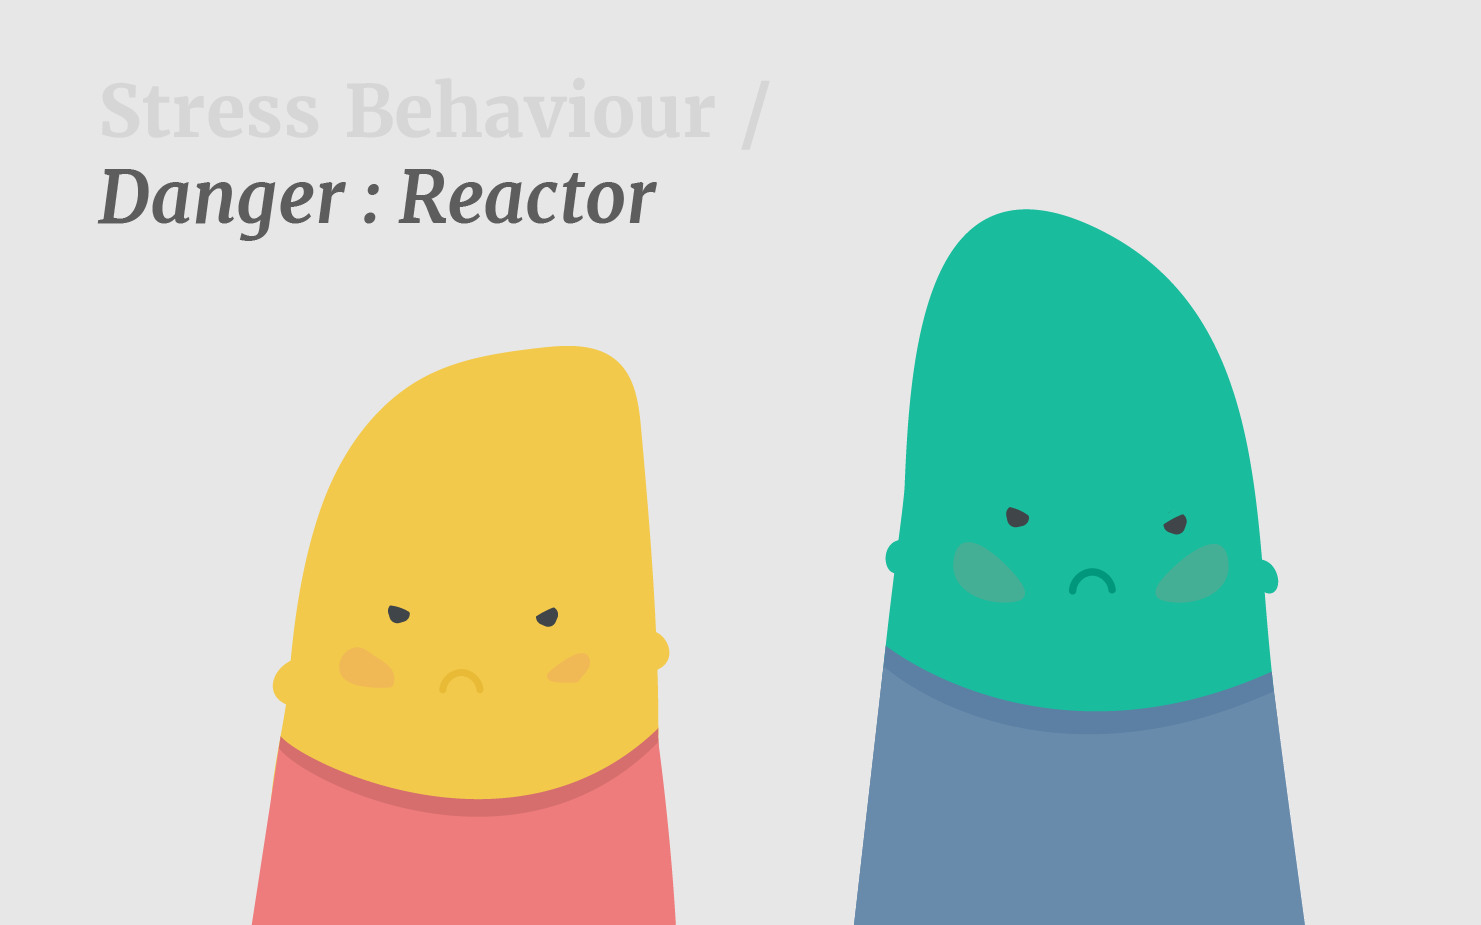 Stress Behaviour / Danger: Reactor